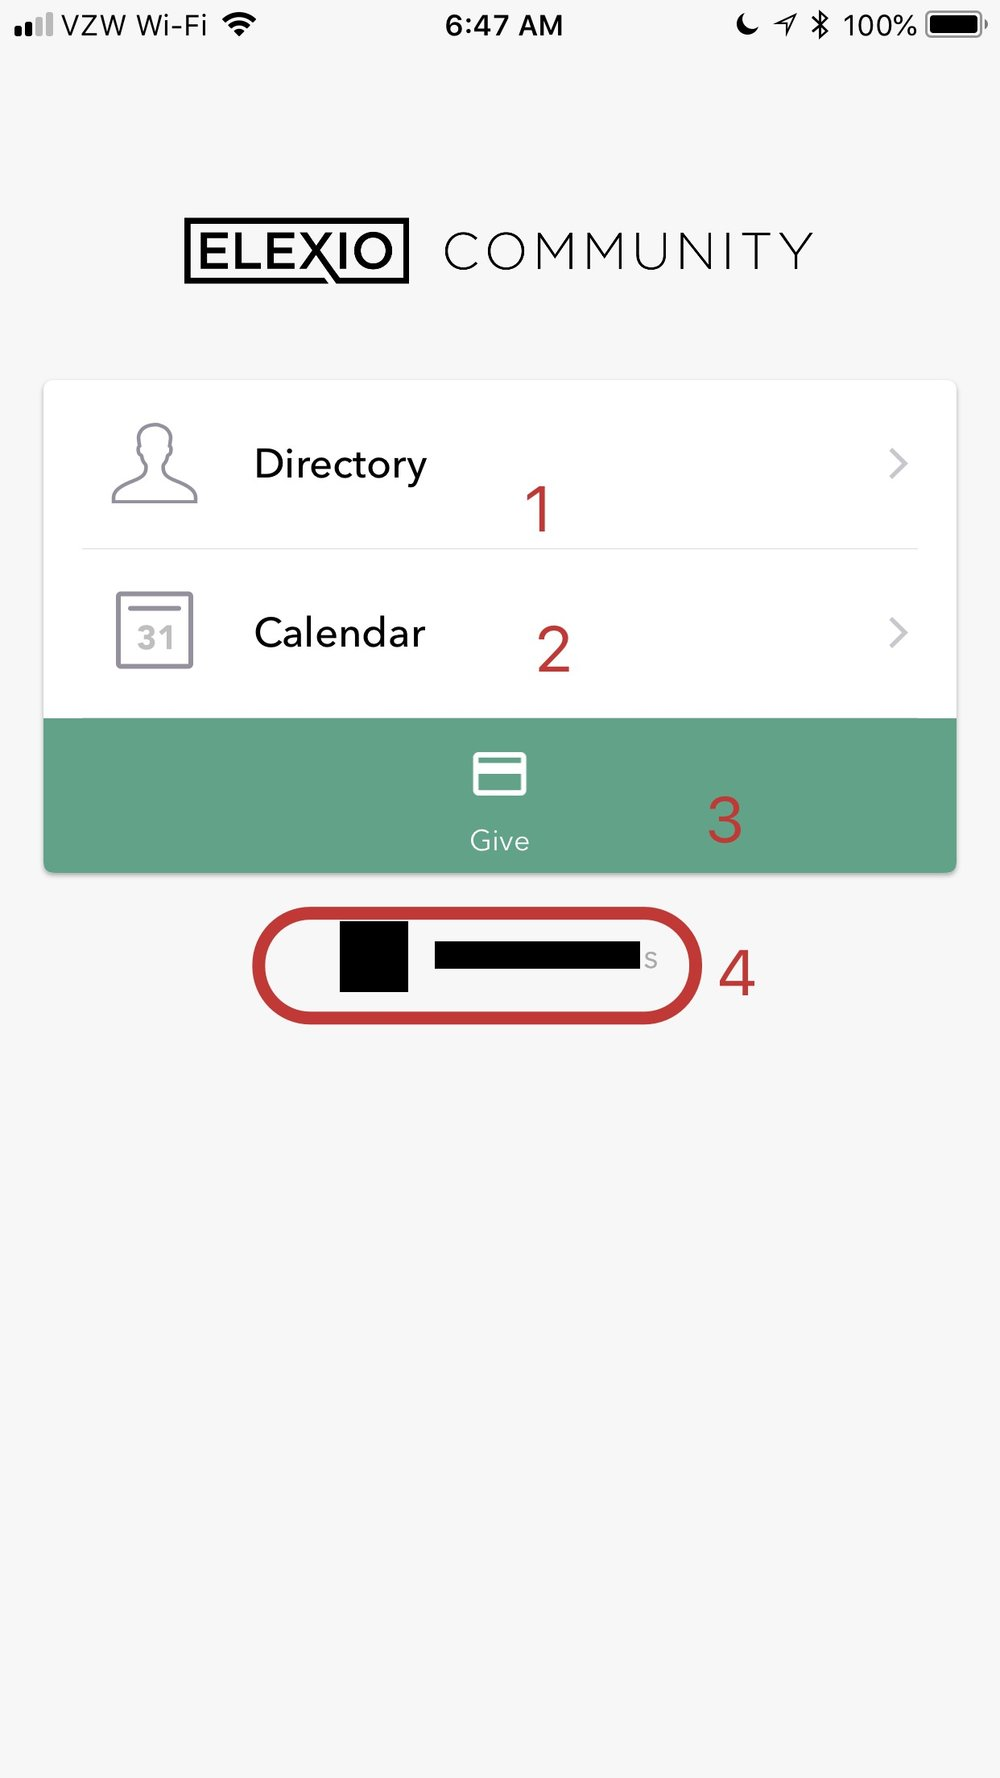 To find someone at Holy Trinity, tap on the Directory choice (marked # 1) on the first page of the Elexio Community App -